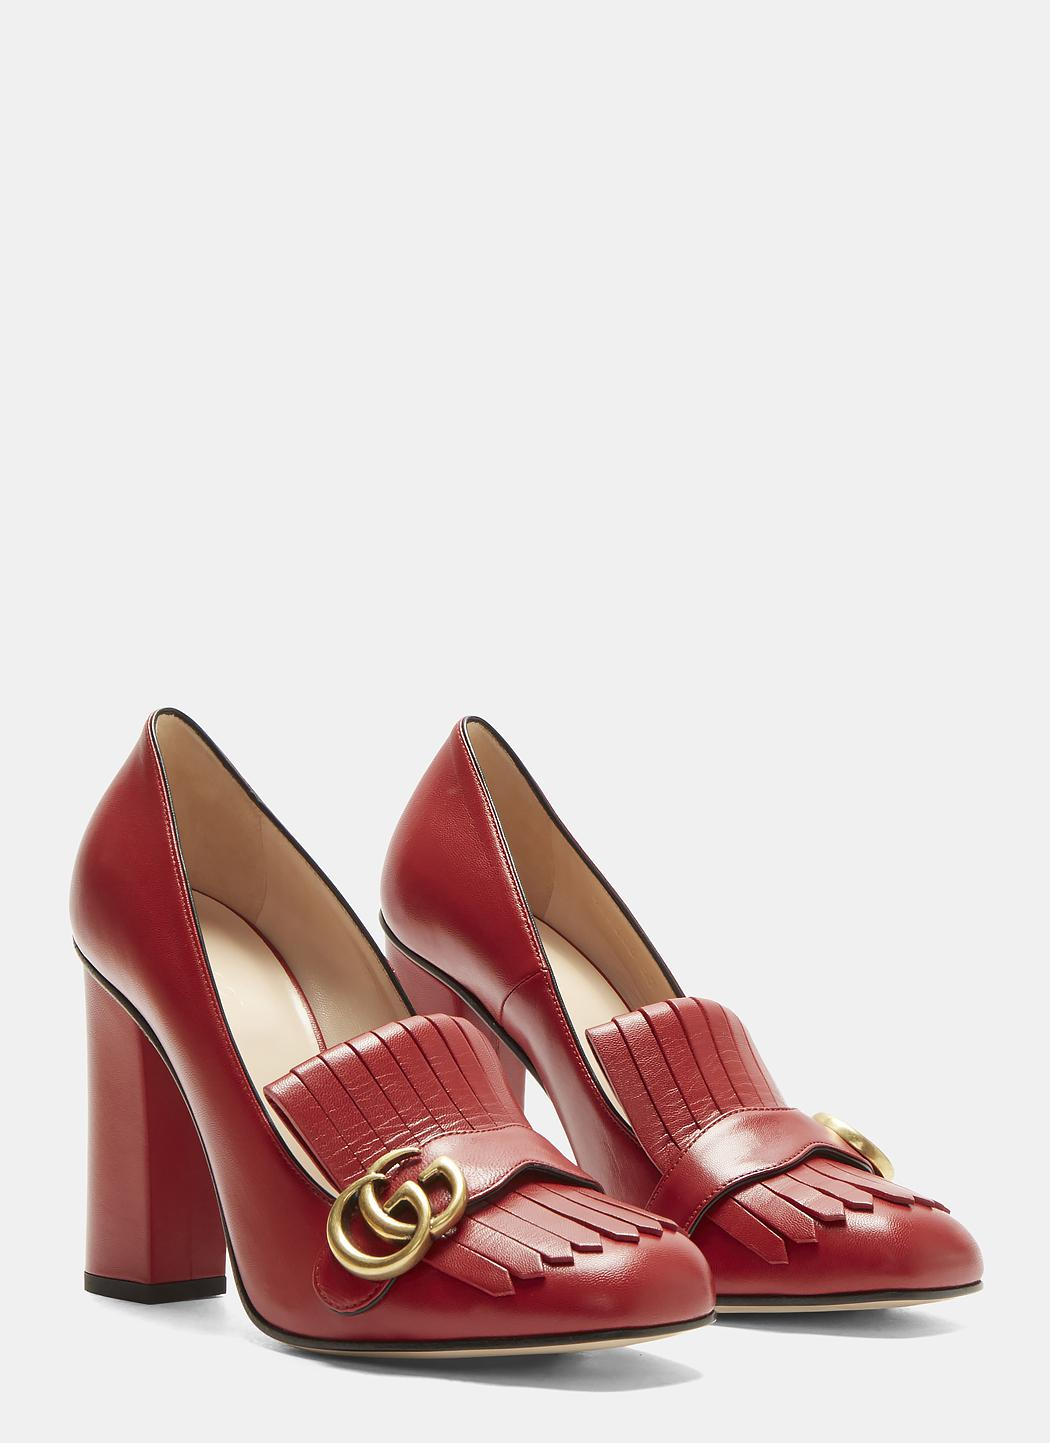 073d648e393 Gucci - GG High-heel Fringed Marmont Pumps In Red - Lyst. View fullscreen